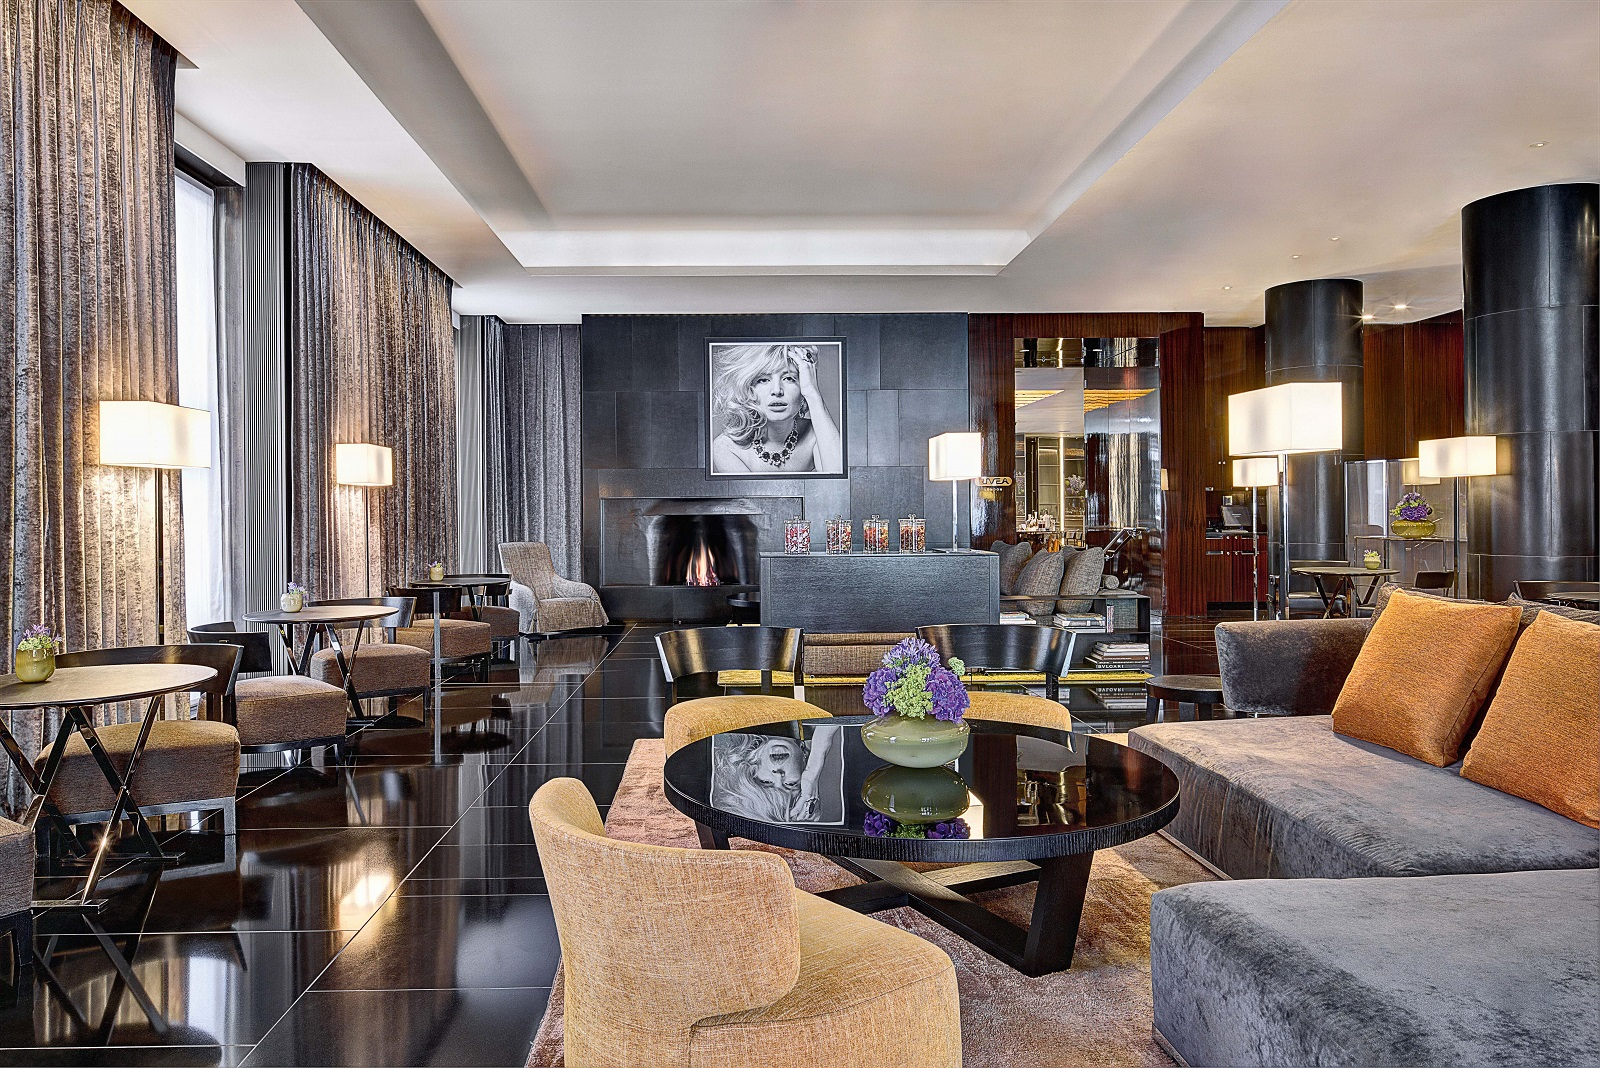 Modern Italian Style Interior Design And Decor Ideas From Bulgari Hotel London